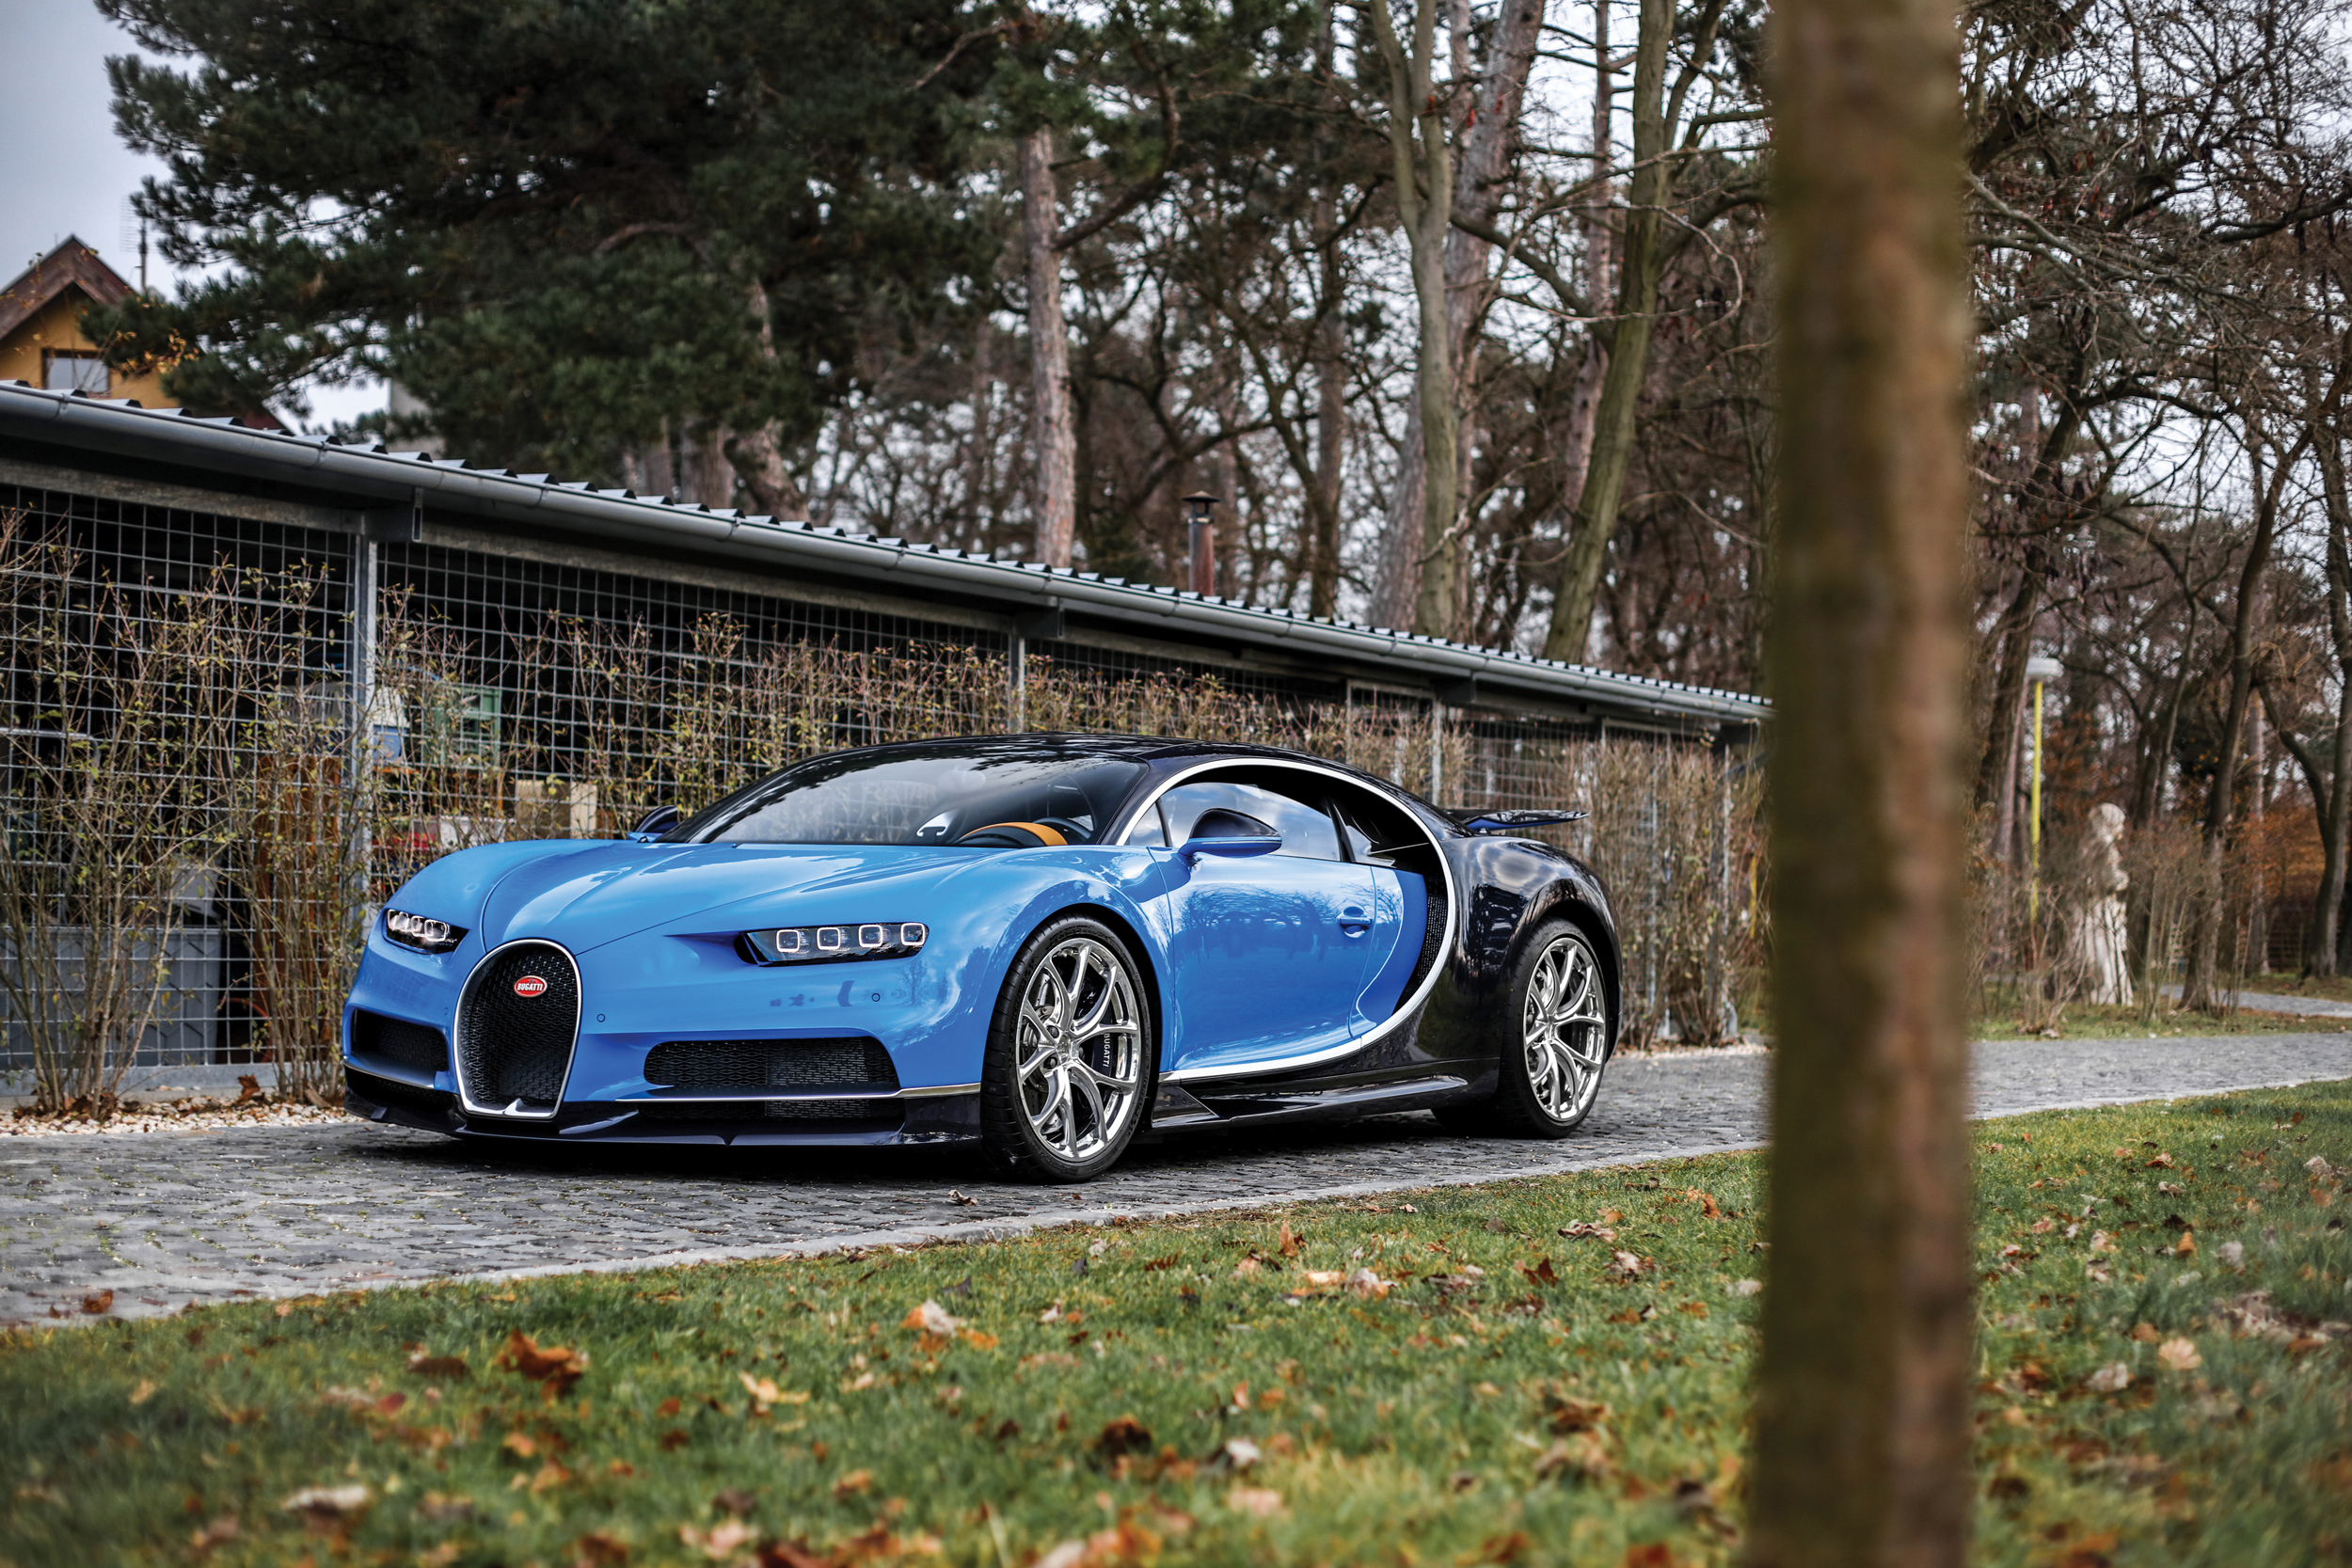 2017 Bugatti Chiron featured in RM Sotheby's 2018 Paris auction during Rétromobile (Credit – Kevin Van Campenhout © 2017 Courtesy of RM Sotheby's)